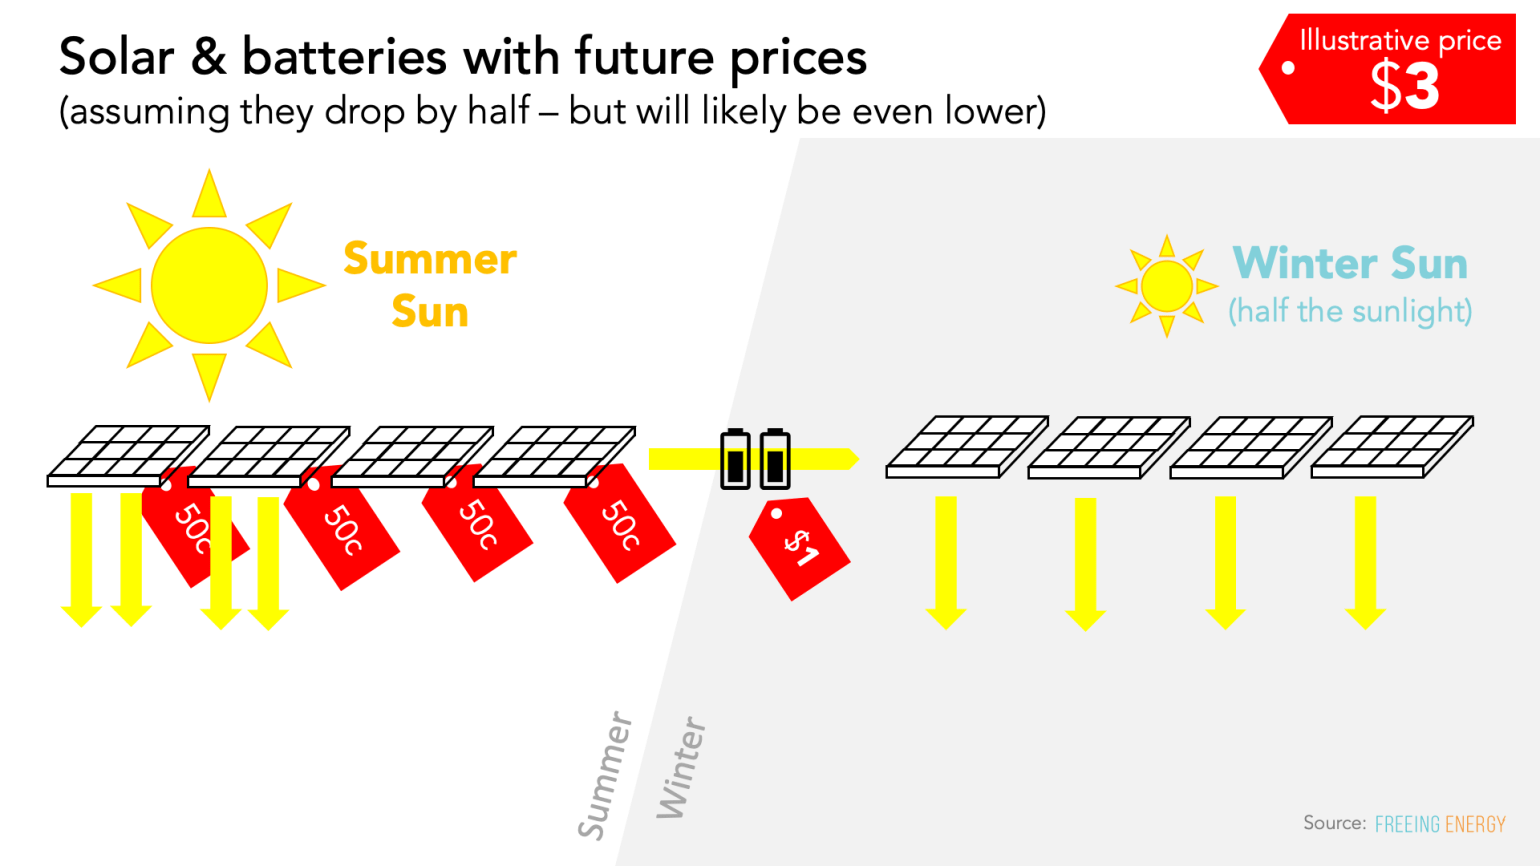 solar and batteries using future prices makes a clean energy gird the most cost competitive